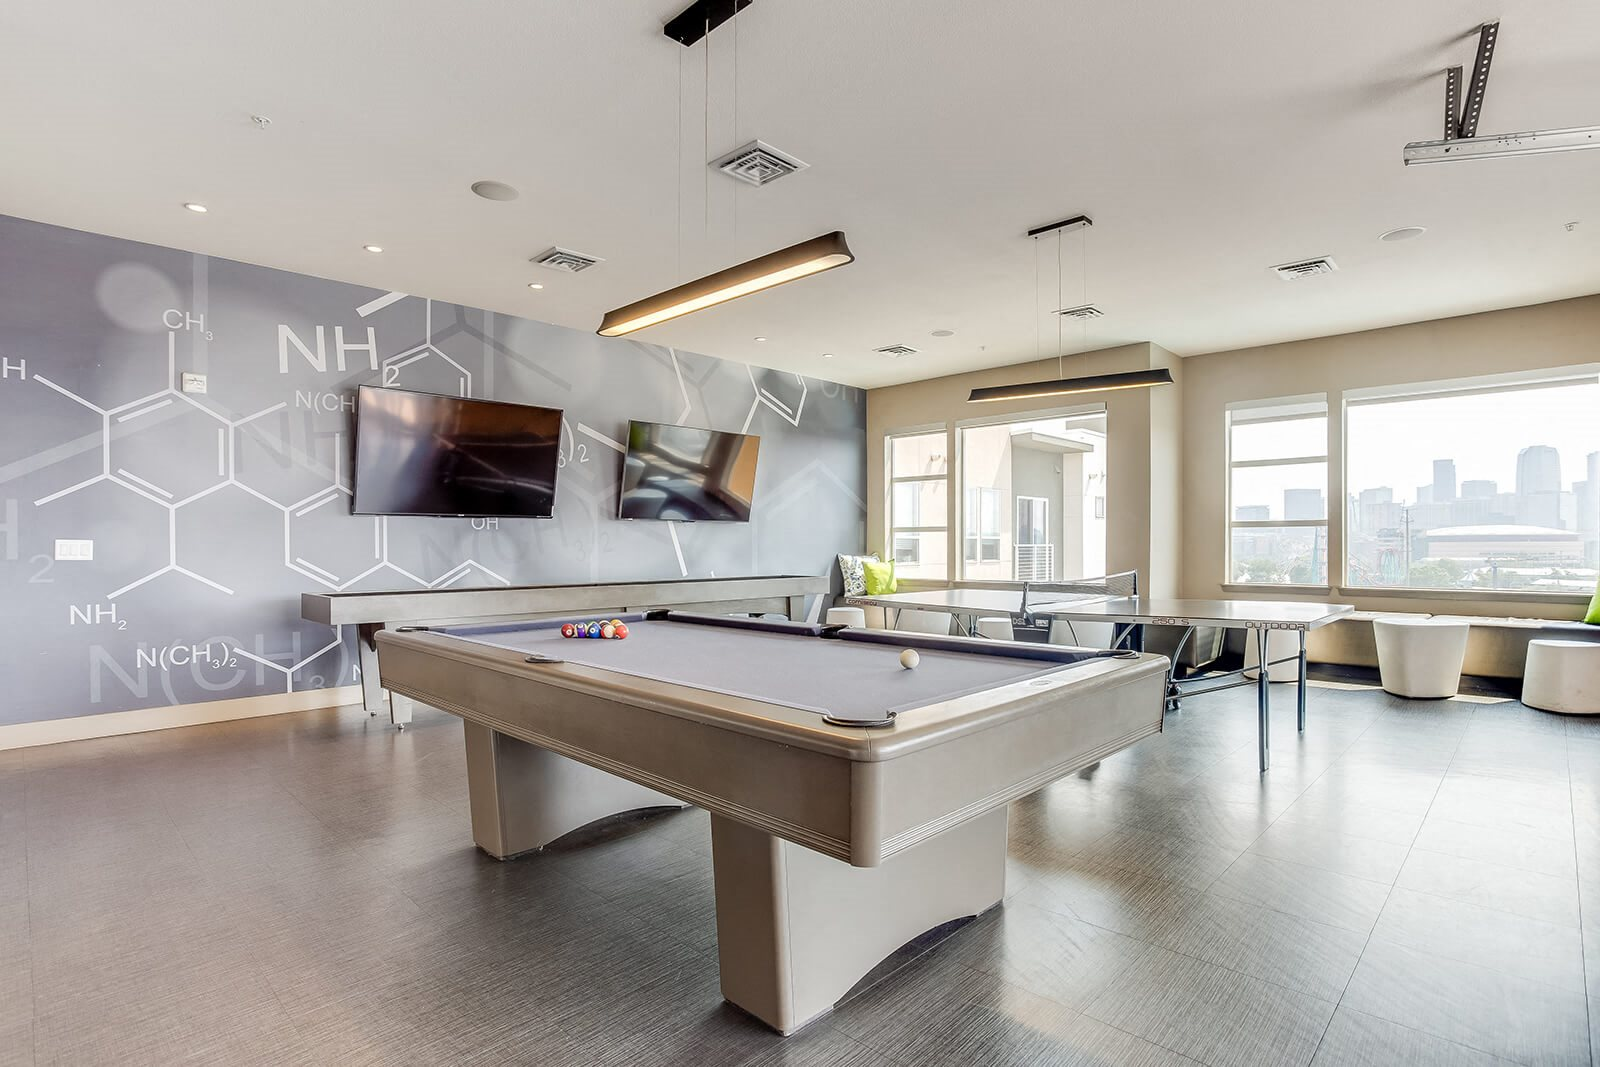 Billiards Table In Great Room at Element 47 by Windsor, Colorado, 80211